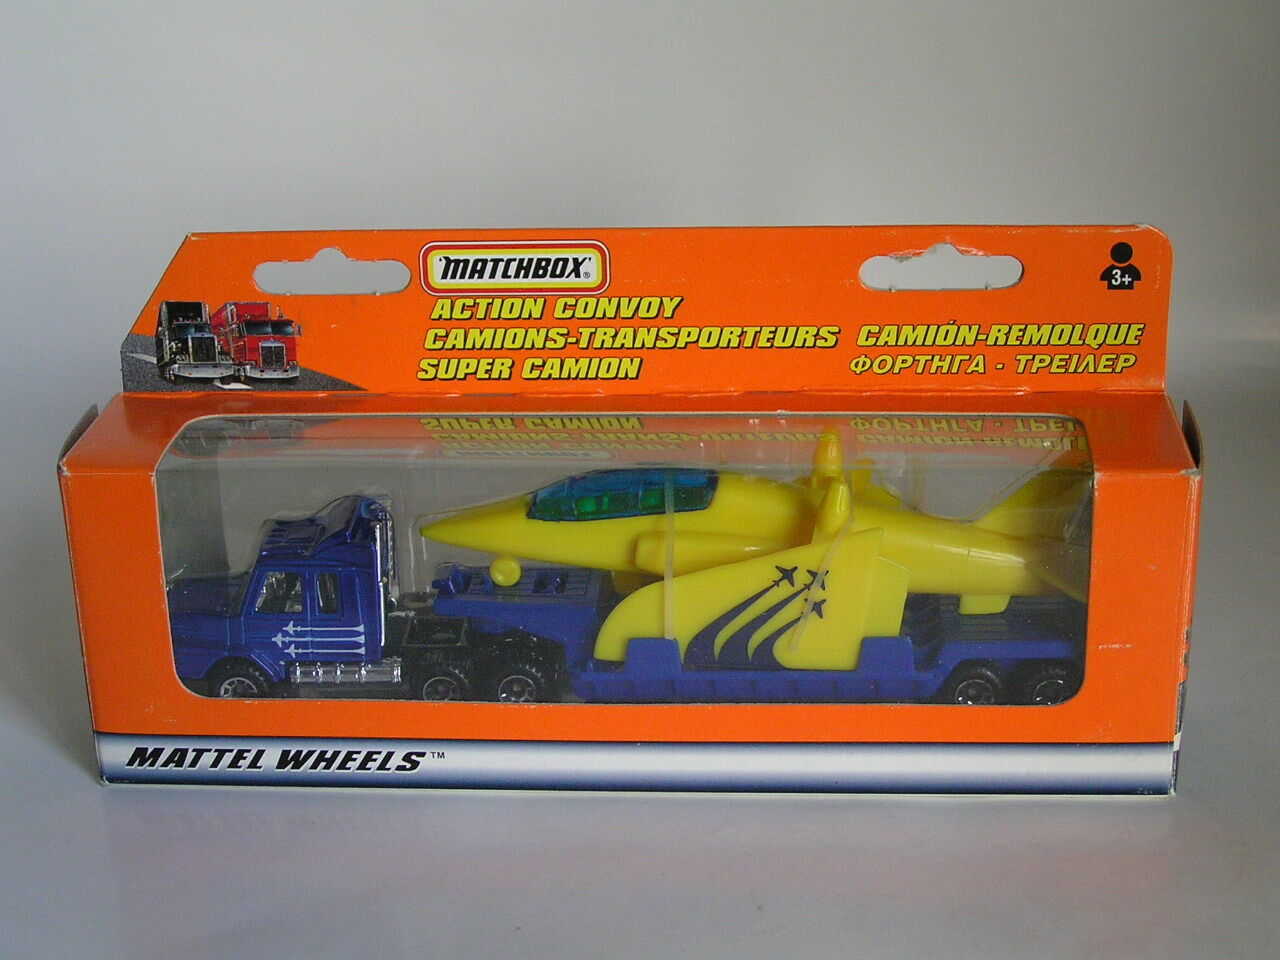 MATCHBOX CONVOY SCANIA avion T-142 avion Transporteur Camion rare allemand Comme neuf IN BOX